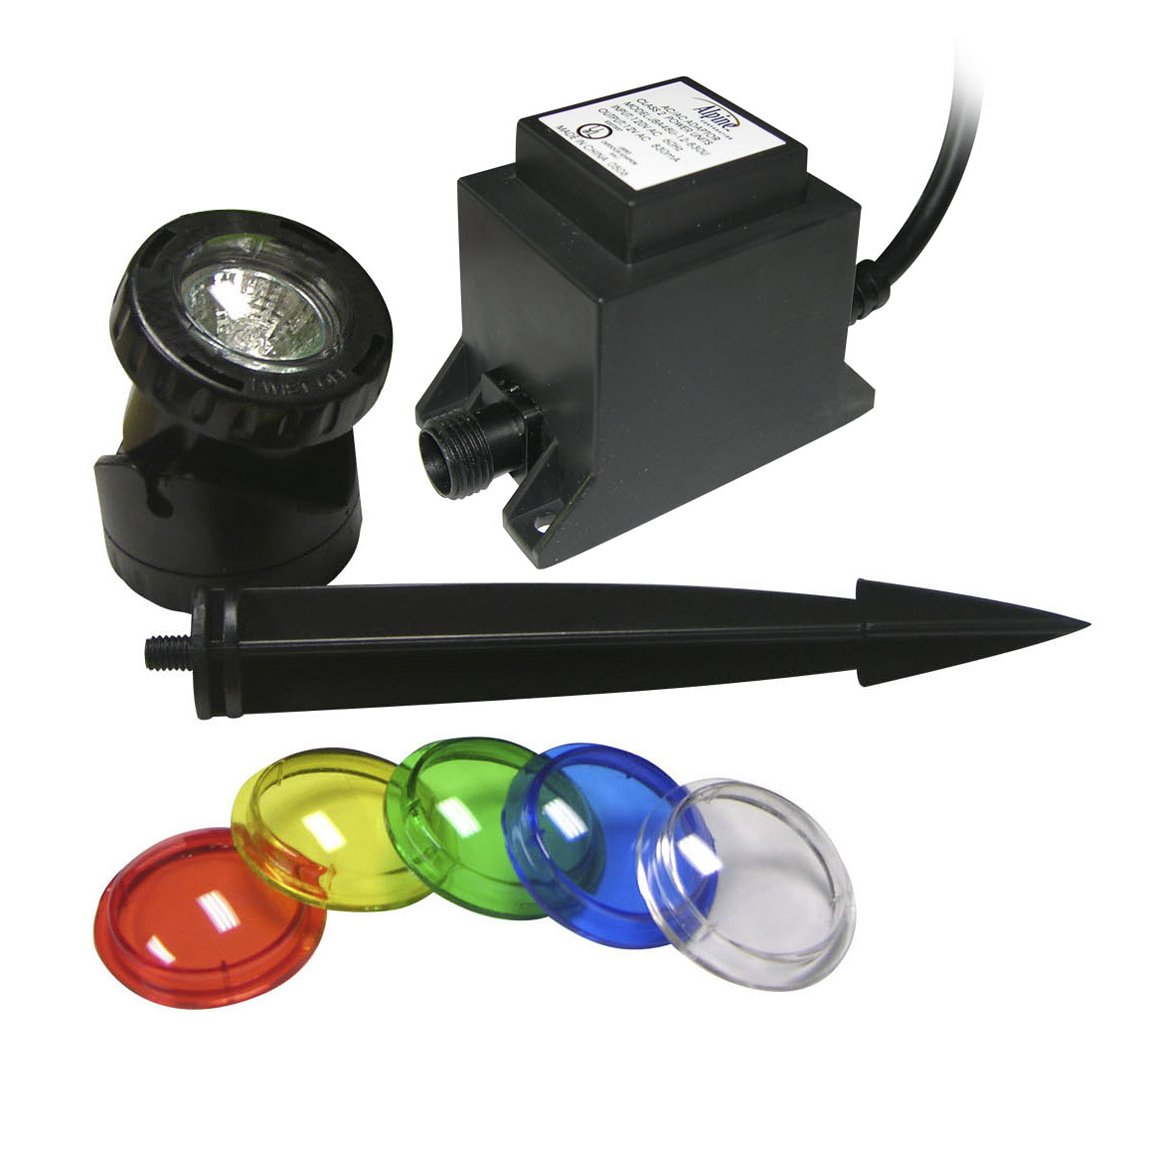 Power Beam 10 W Light Only 23ft Cord with Color Lenses & Stake